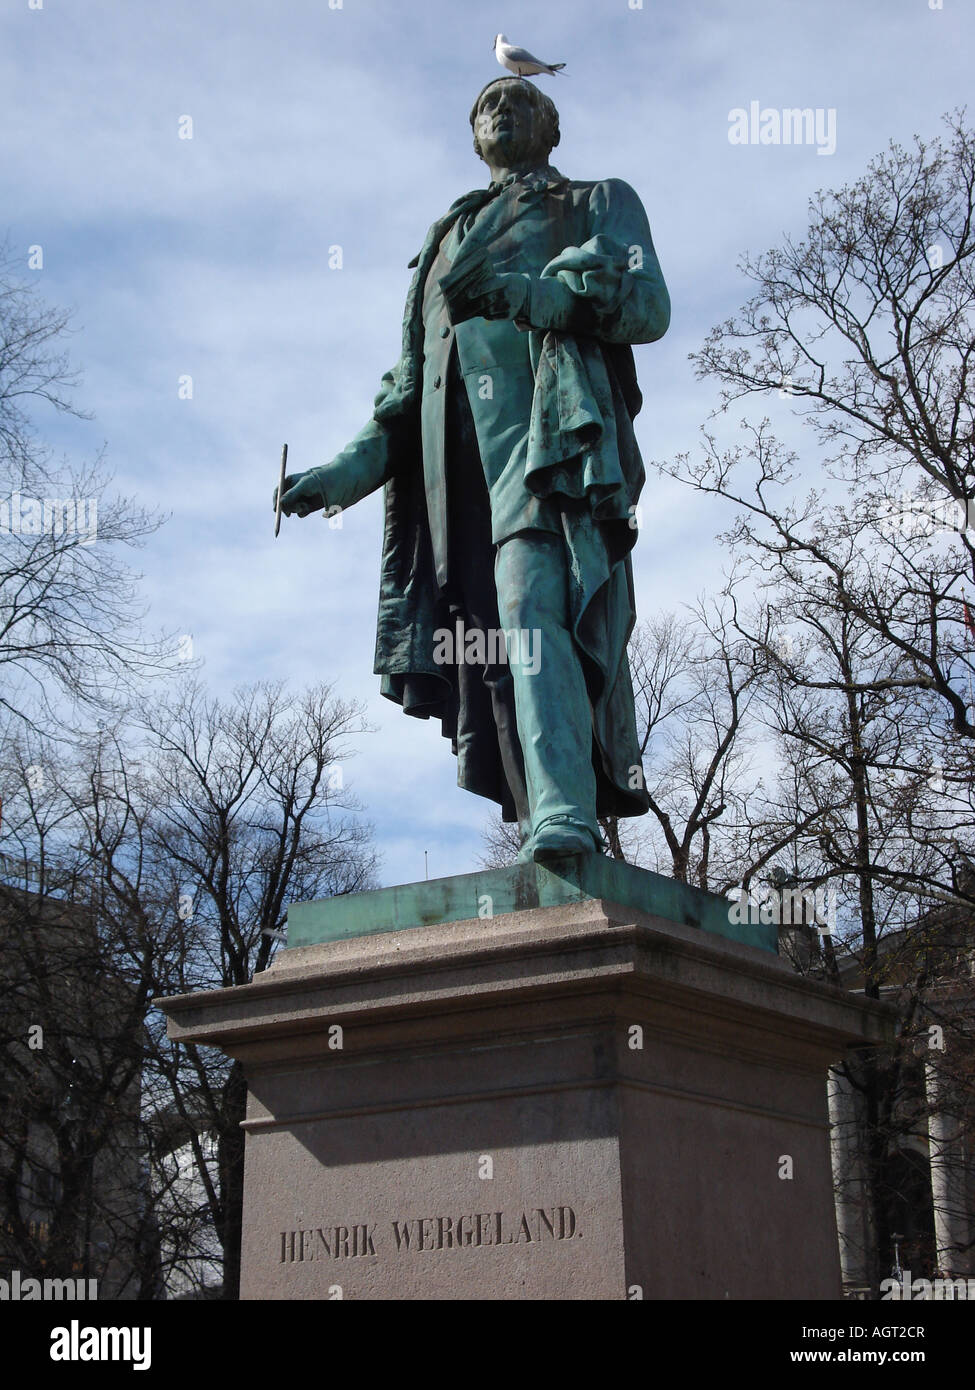 Statue of Henrik Wergeland with pigeon on his head, Oslo, Norway - Stock Image